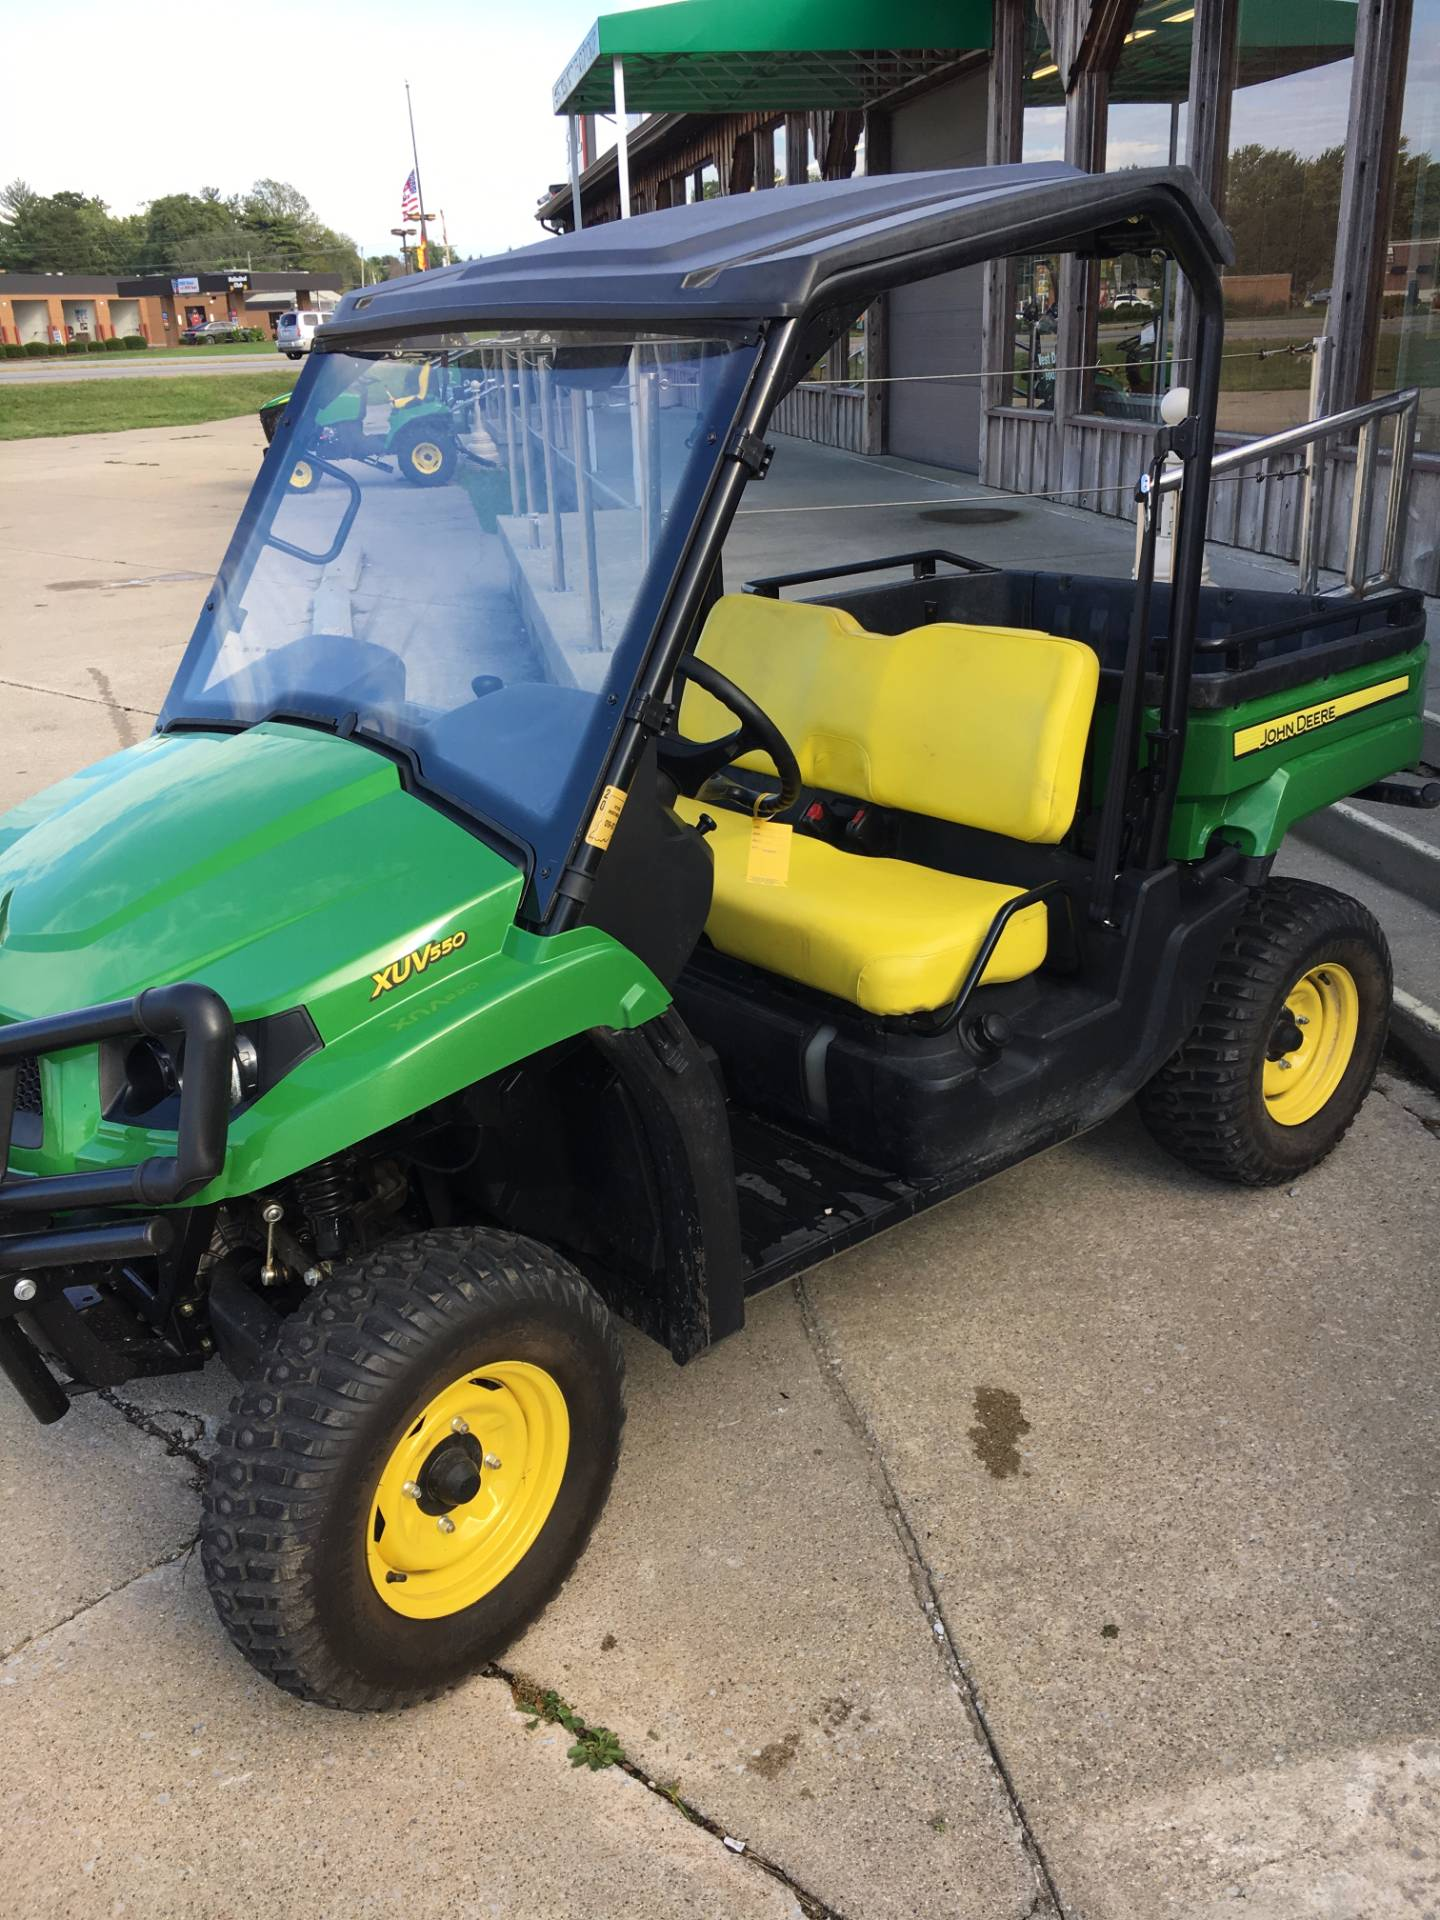 used 2013 john deere gator™ xuv 550 utility vehicles in terre haute, in